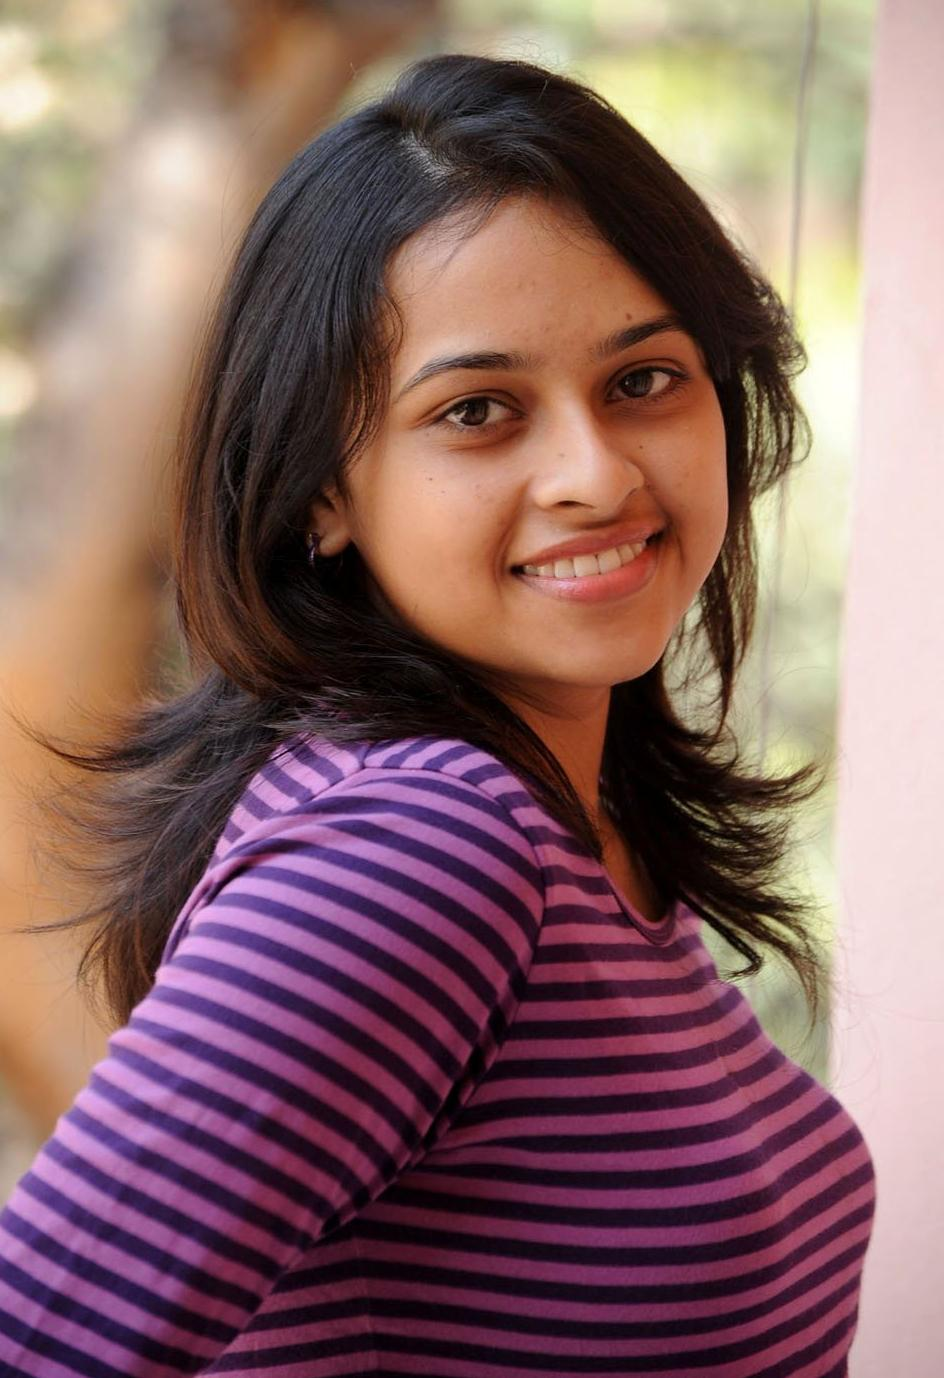 Indian Cute Child Wallpapers Sree Divya